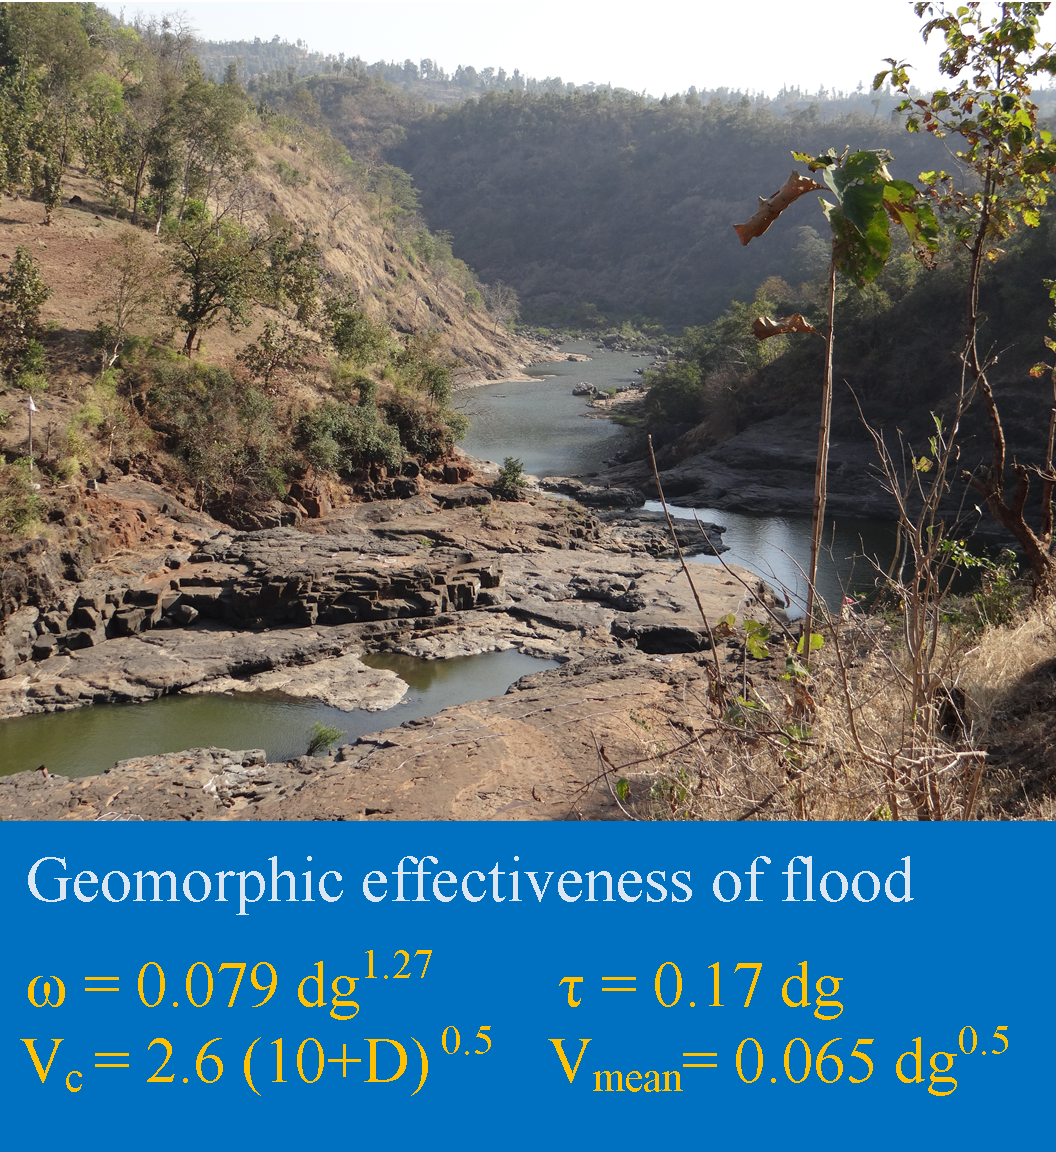 Hydrologic and Geomorphic Aspects of High-magnitude Floods on the Par River in Western India